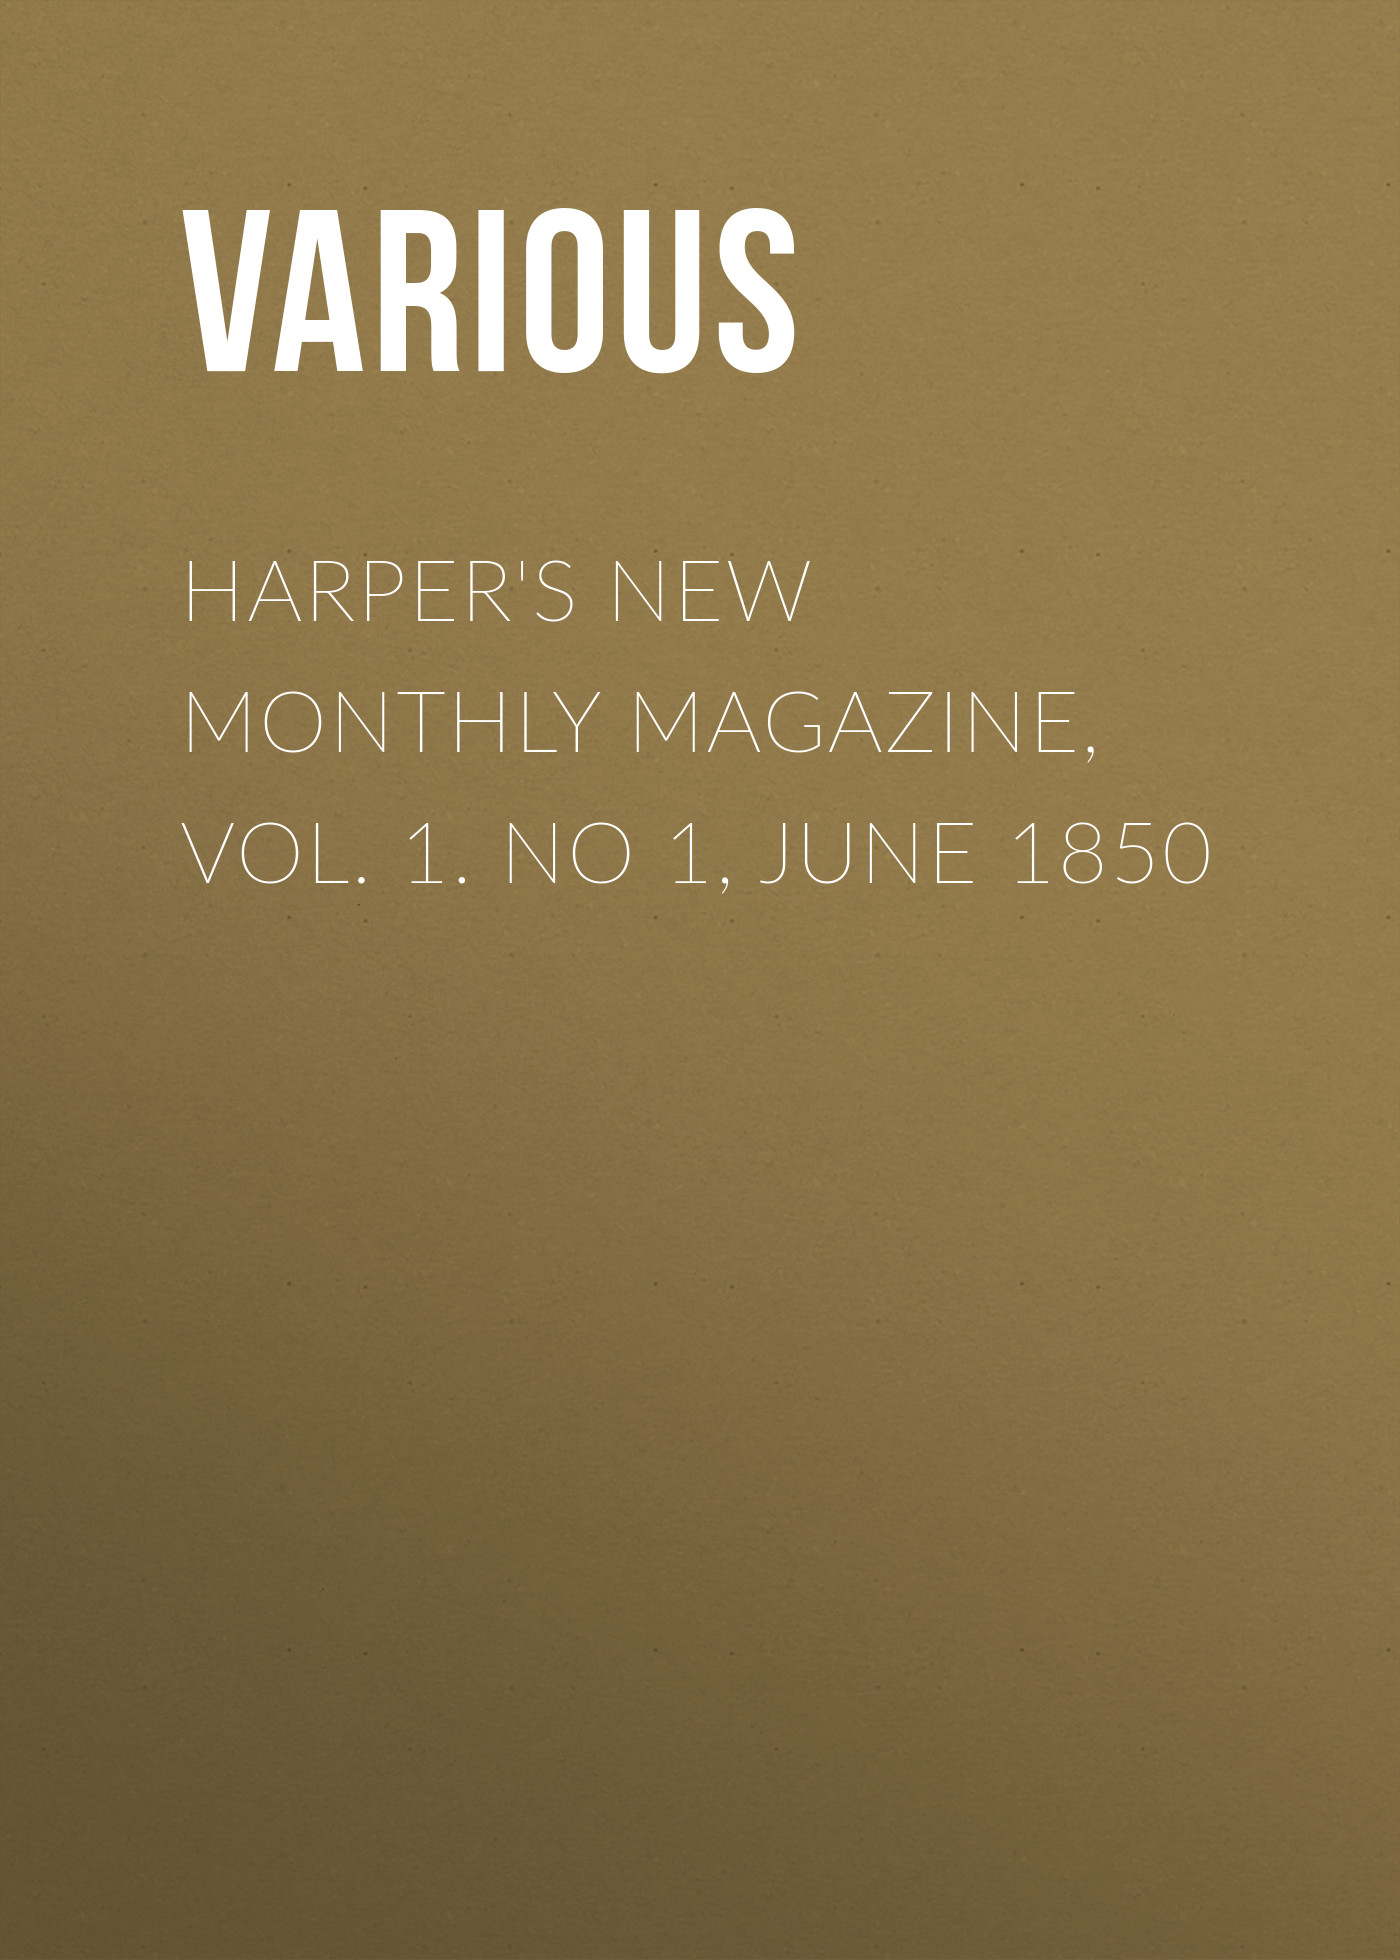 Фото - Various Harper's New Monthly Magazine, Vol. 1. No 1, June 1850 various harper s new monthly magazine no xxiii april 1852 vol iv